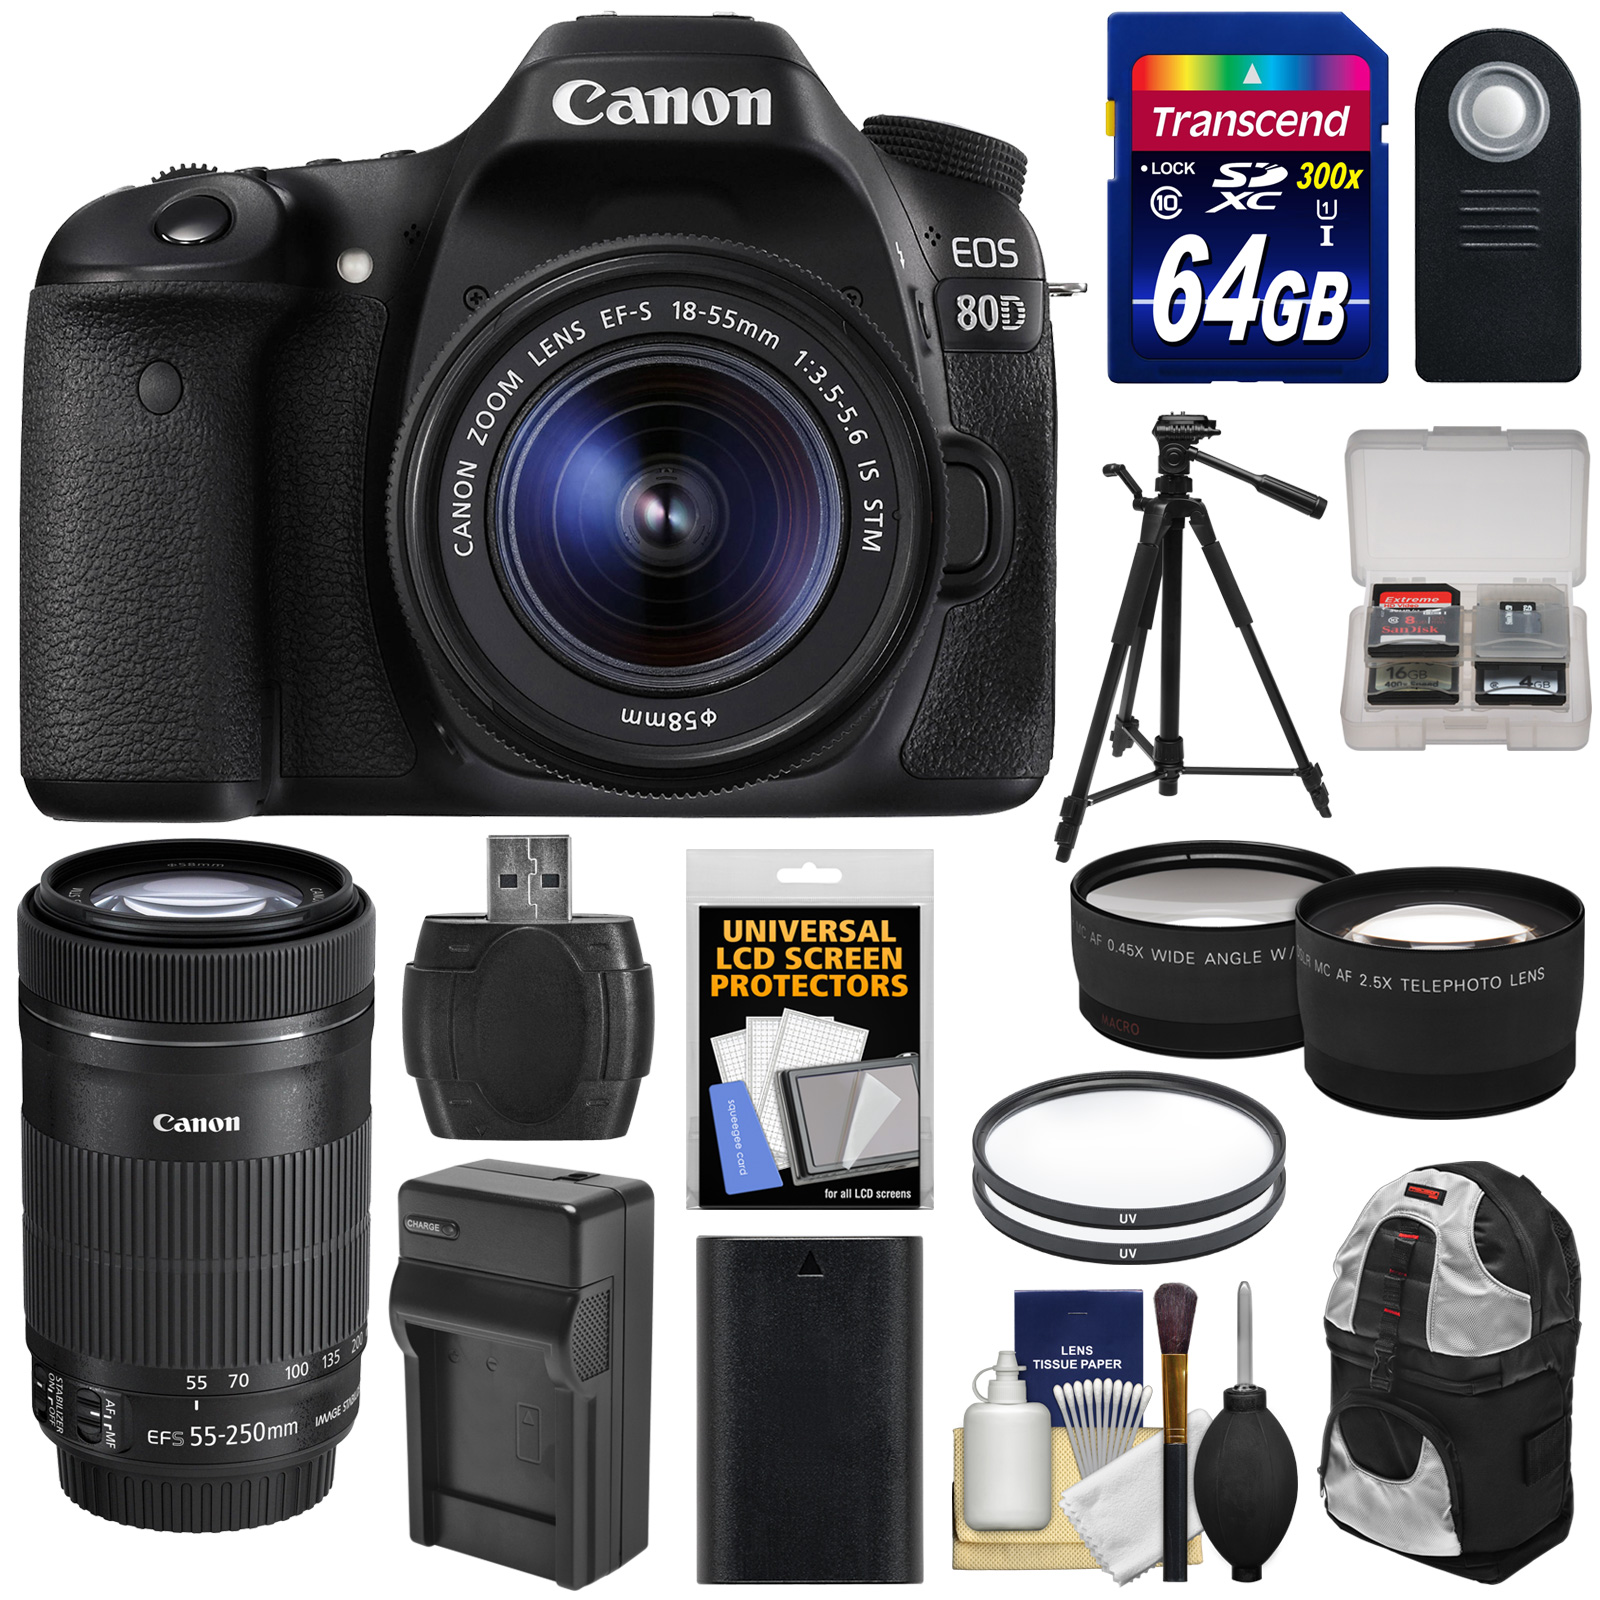 Canon EOS 80D Wi-Fi Digital SLR Camera & EF-S 18-55mm IS STM with 55-250mm IS STM Lens + 64GB + Battery &... by Canon